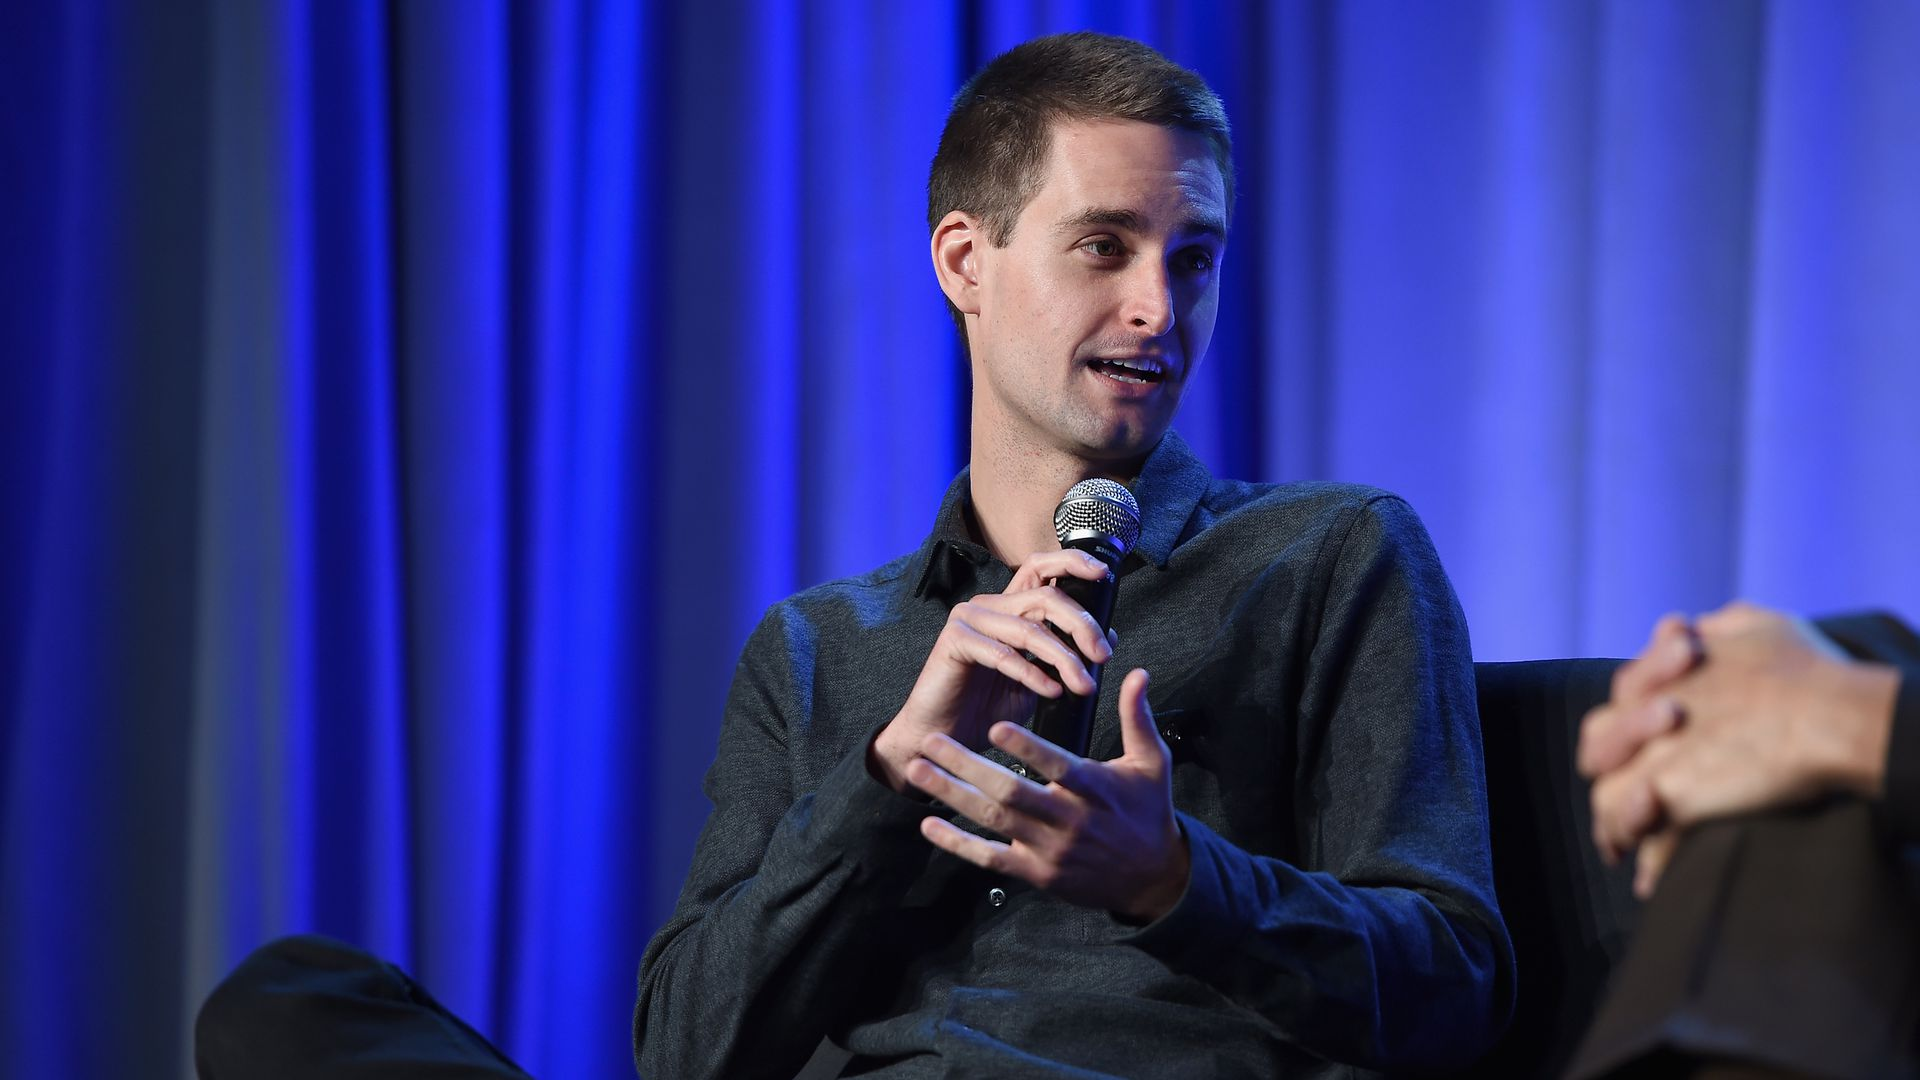 CEO and co-founder of Snapchat Evan Spiegel speaking onstage.